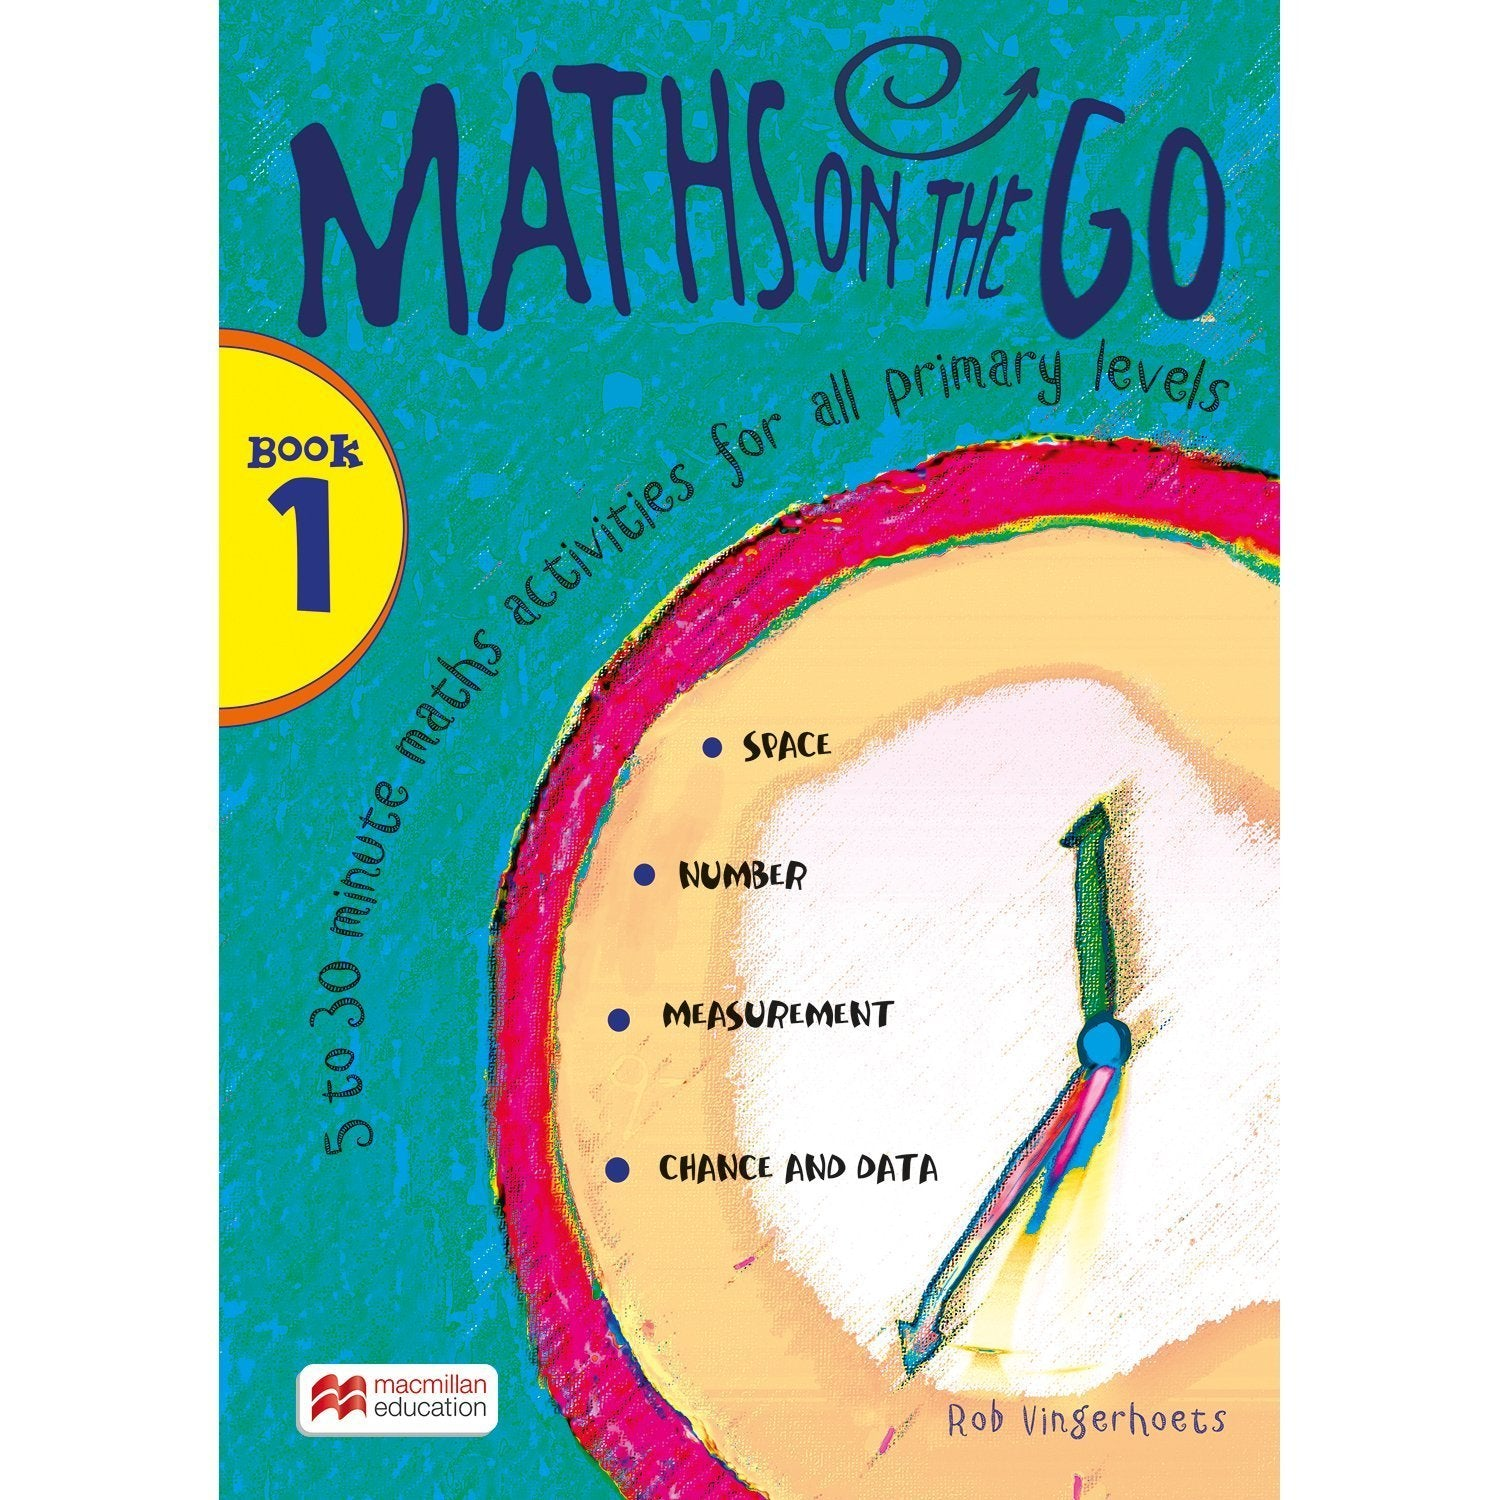 Maths on the Go Book 1